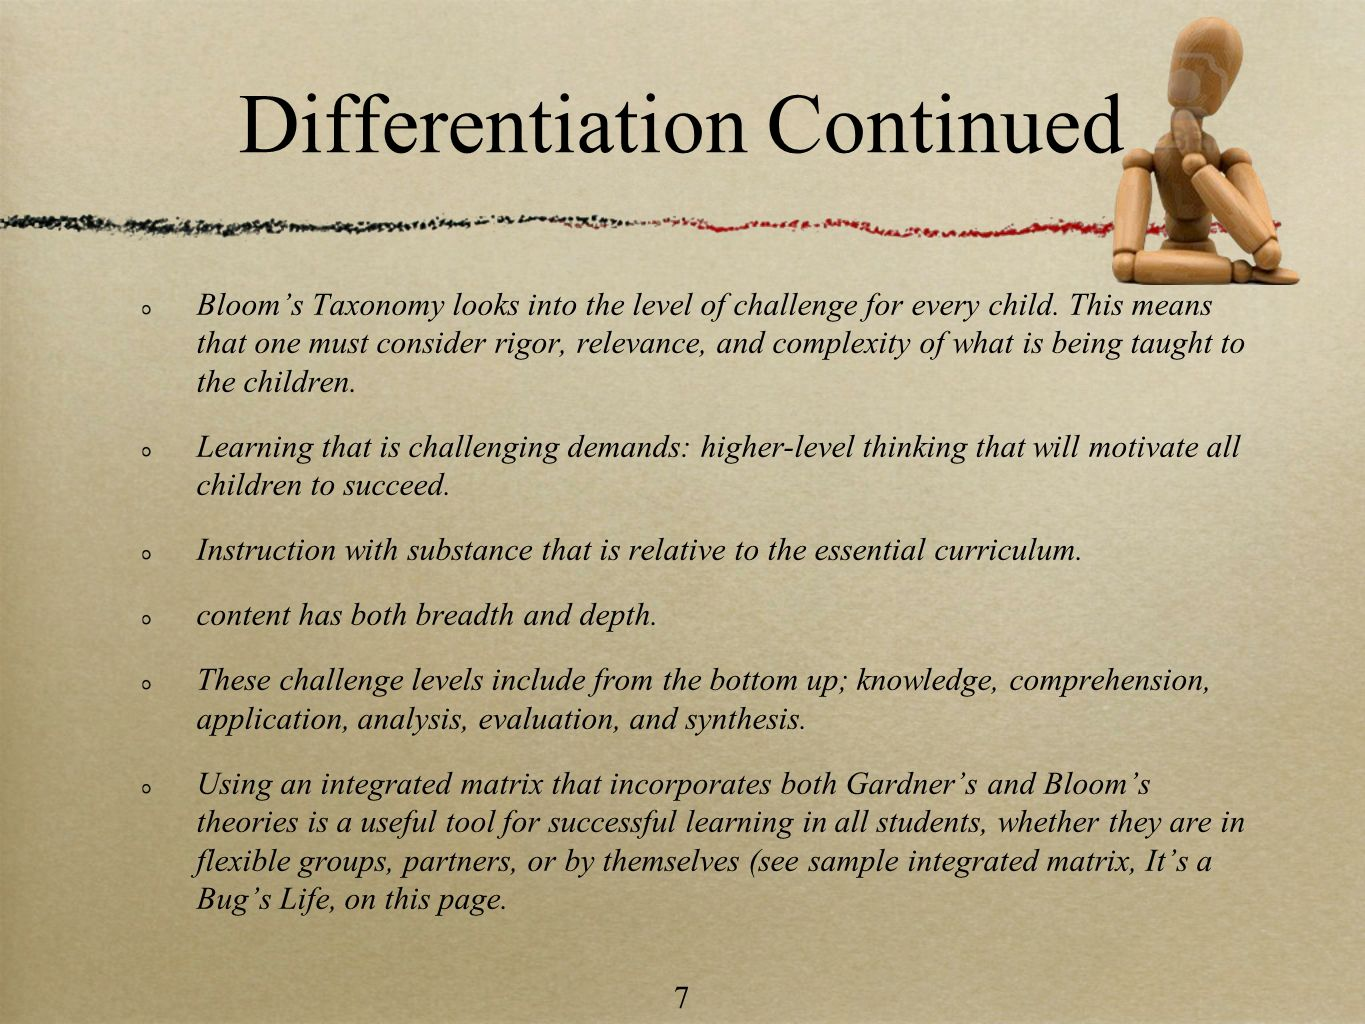 Differentiation Continued